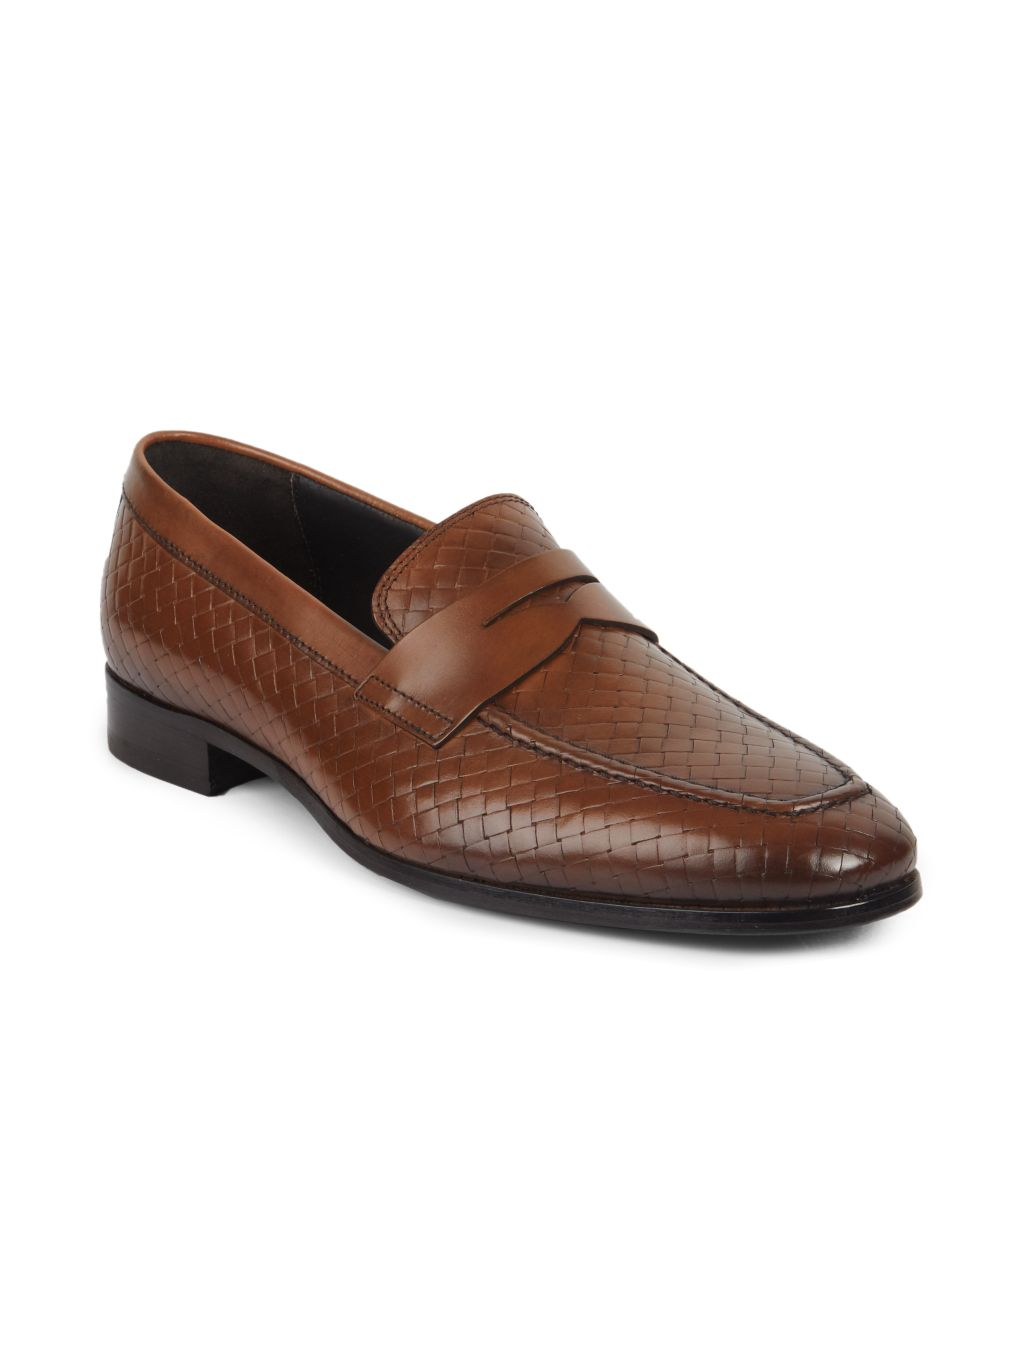 To Boot New York Dante Woven Leather Loafers